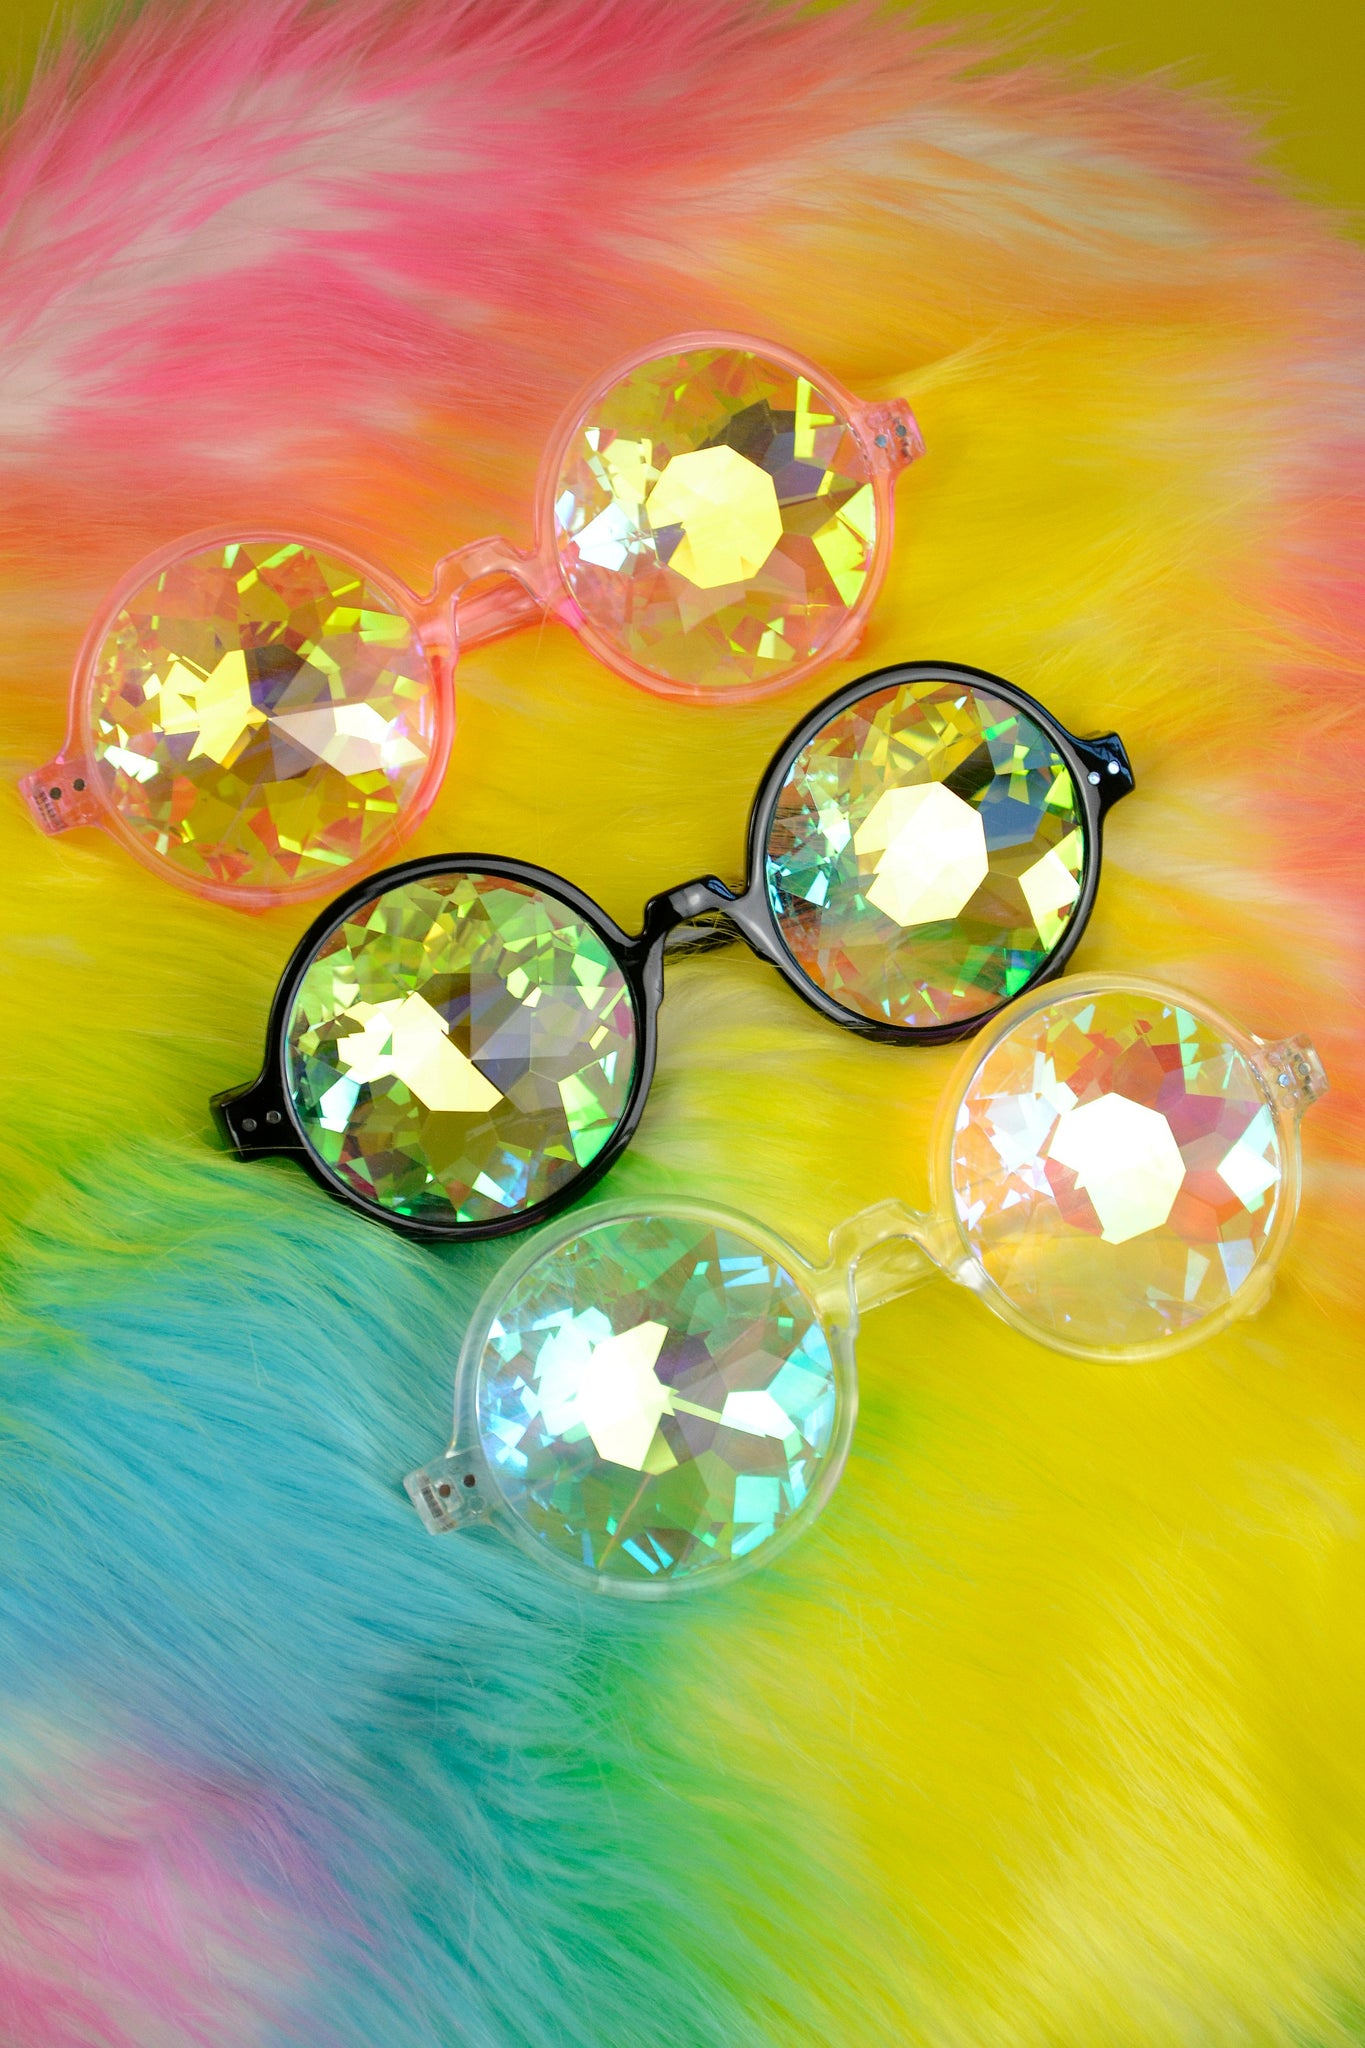 Kaleidoscopic rave sunglasses